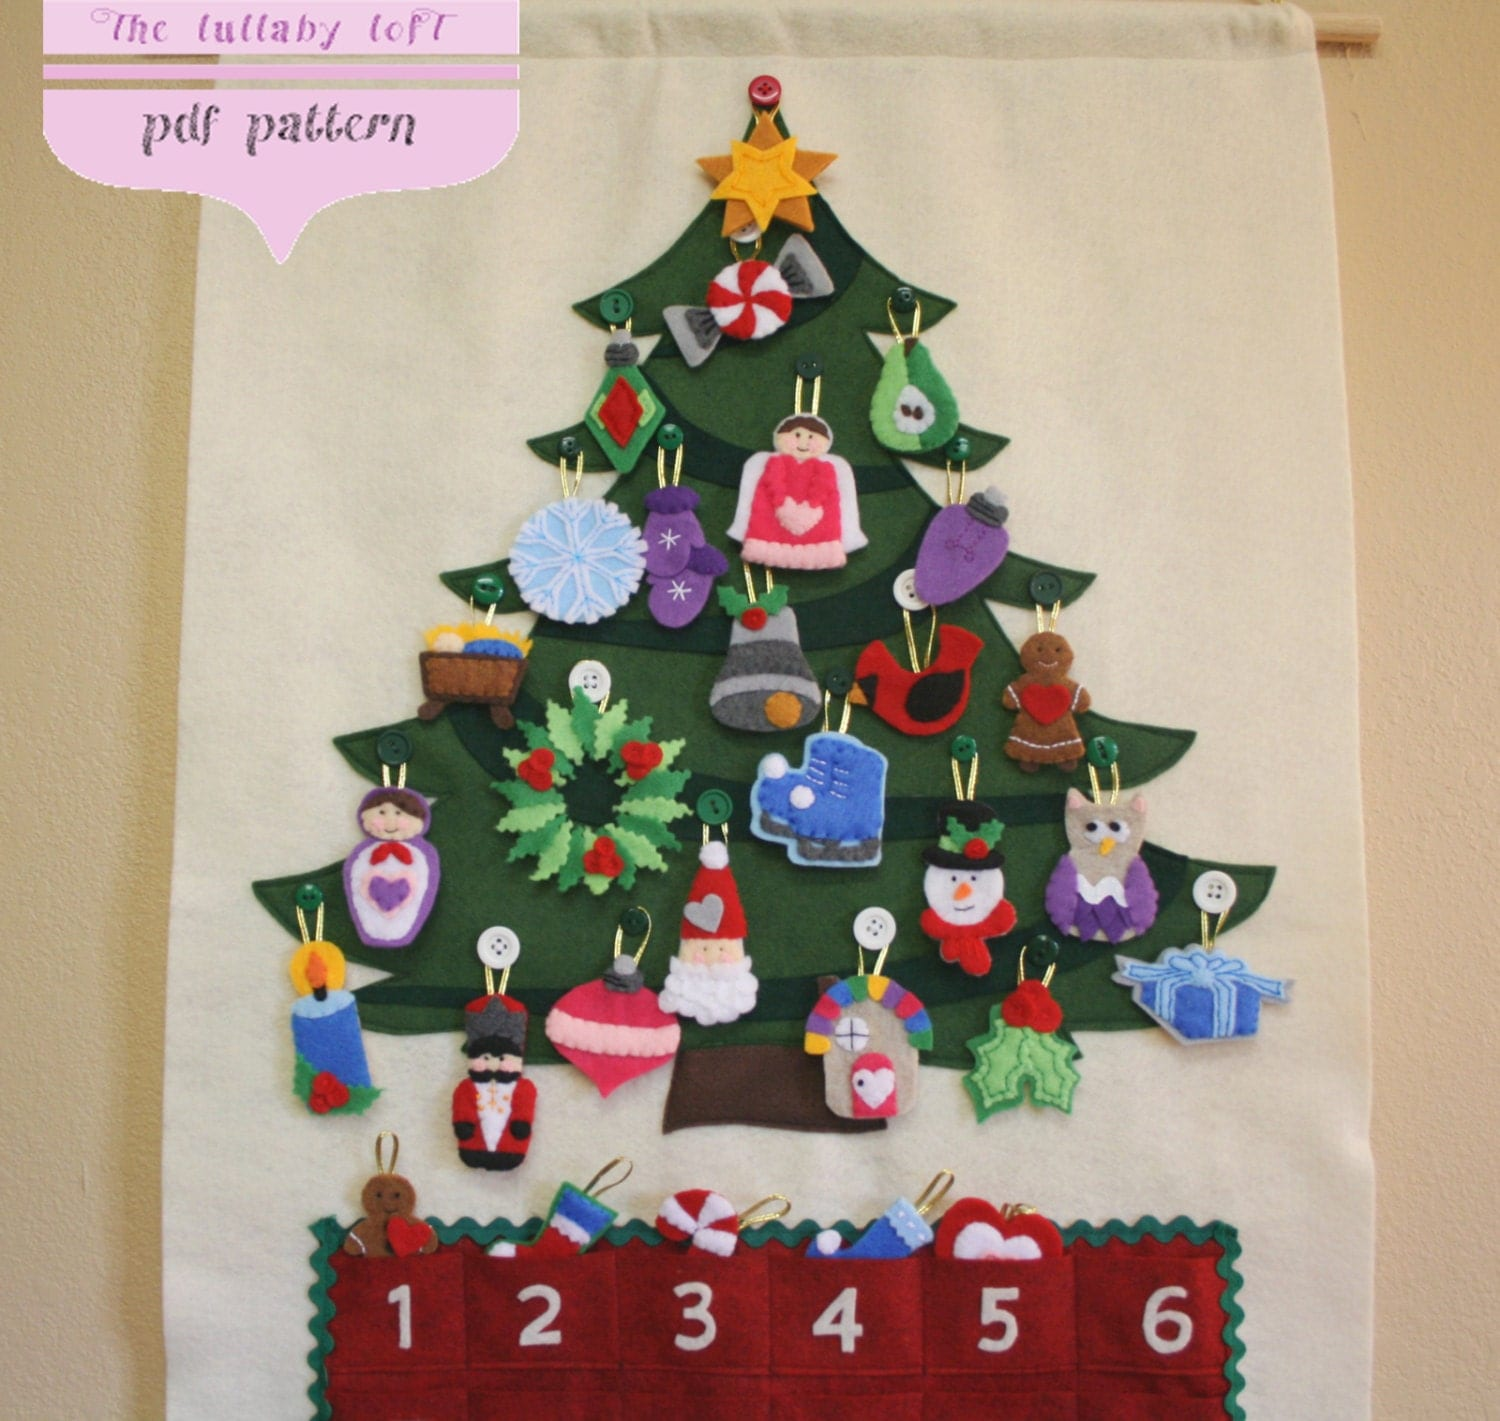 Christmas Tree Advent Calendar Pattern 29 by thelullabyloft